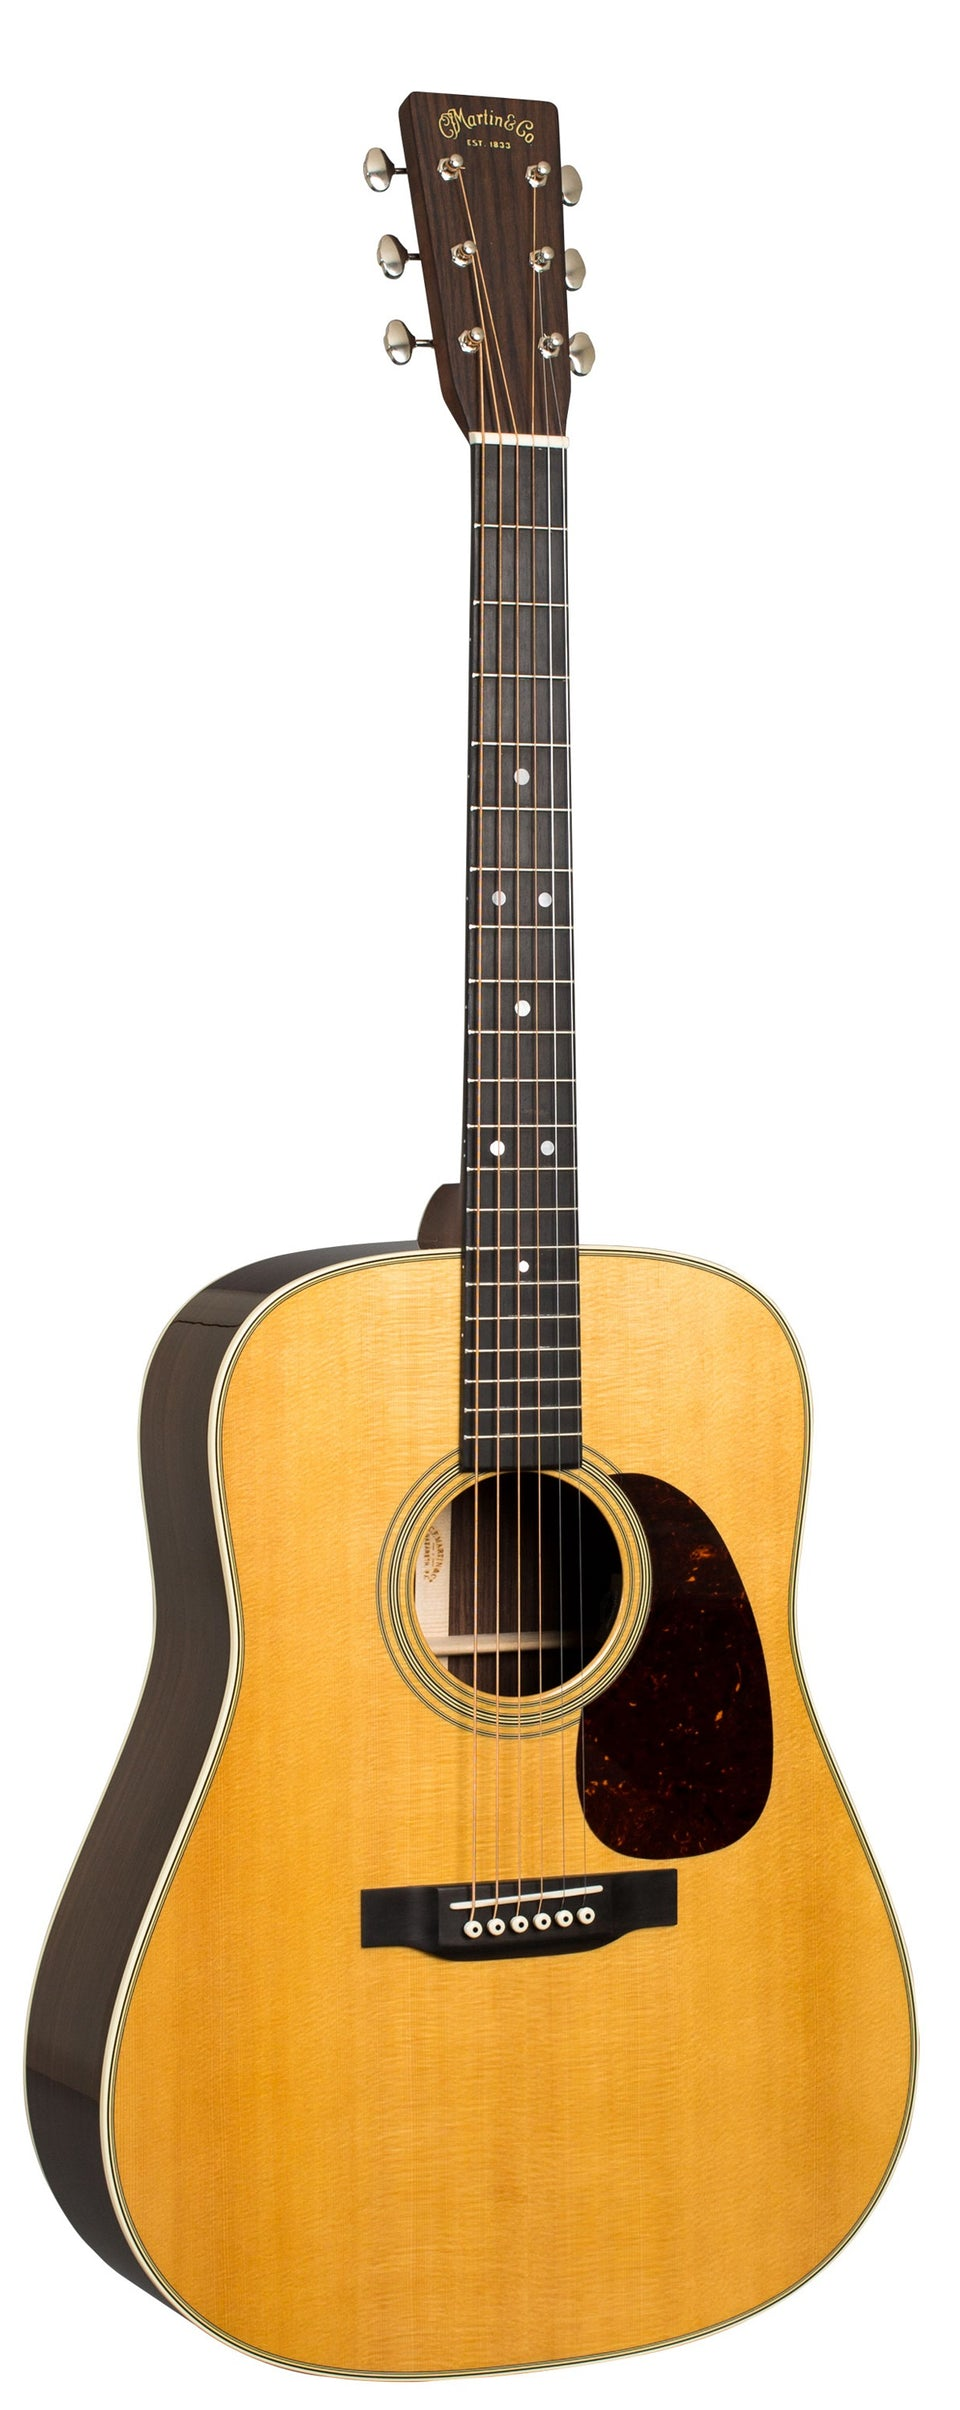 Martin D-28 (2017) Dreadnought Acoustic Guitar